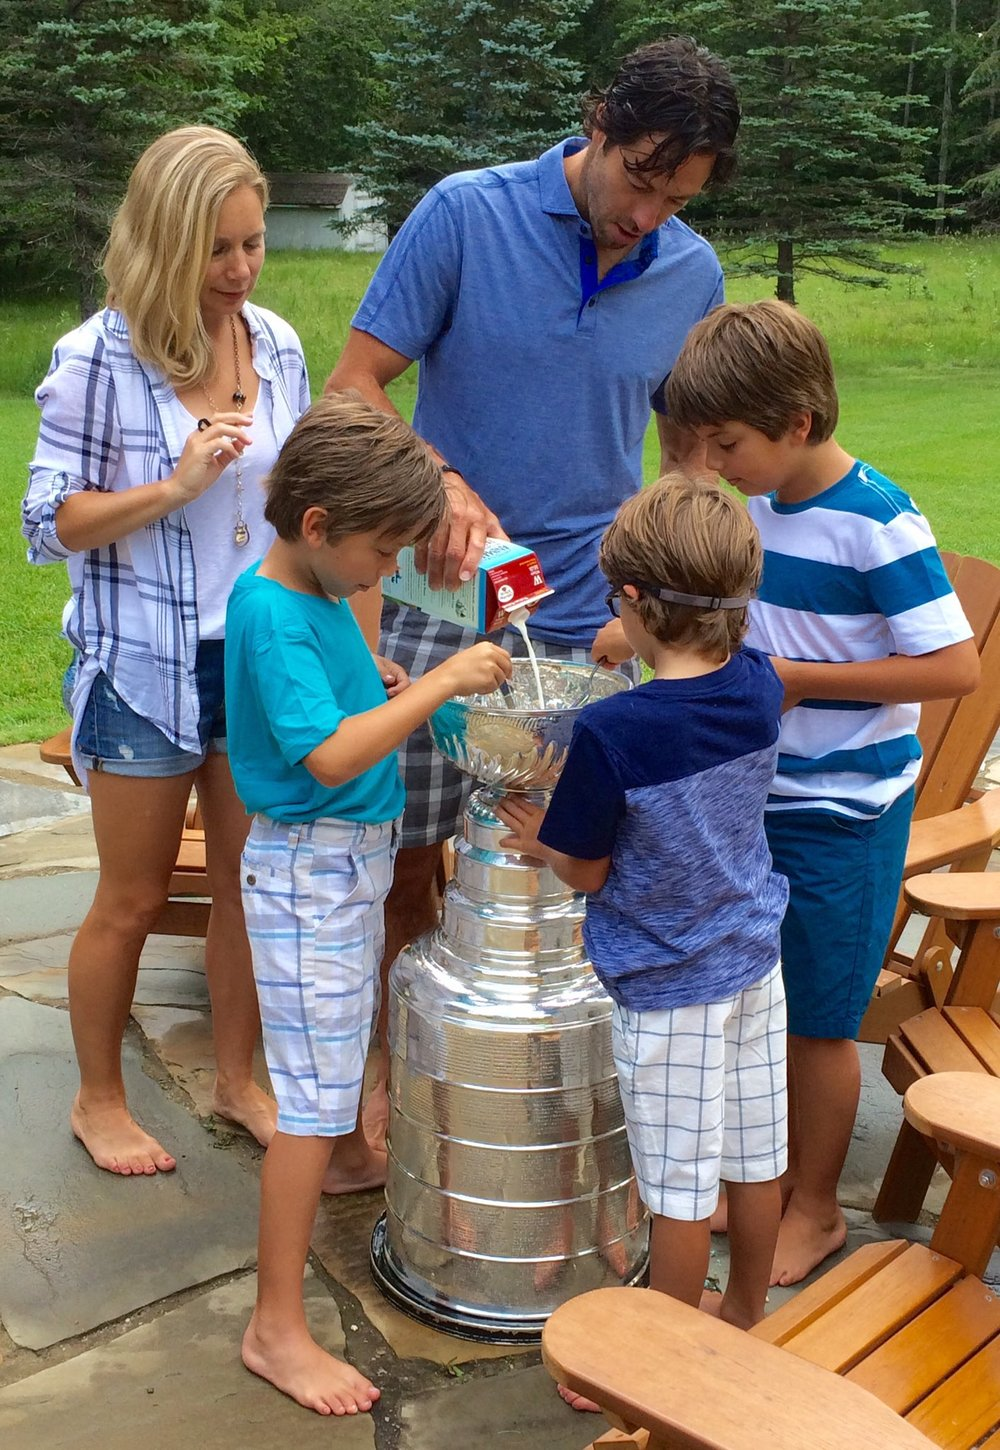 Matt Cullen's sons enjoying their sixth bowl of cereal before the Cup had its first extreme reaction to lactose. Source